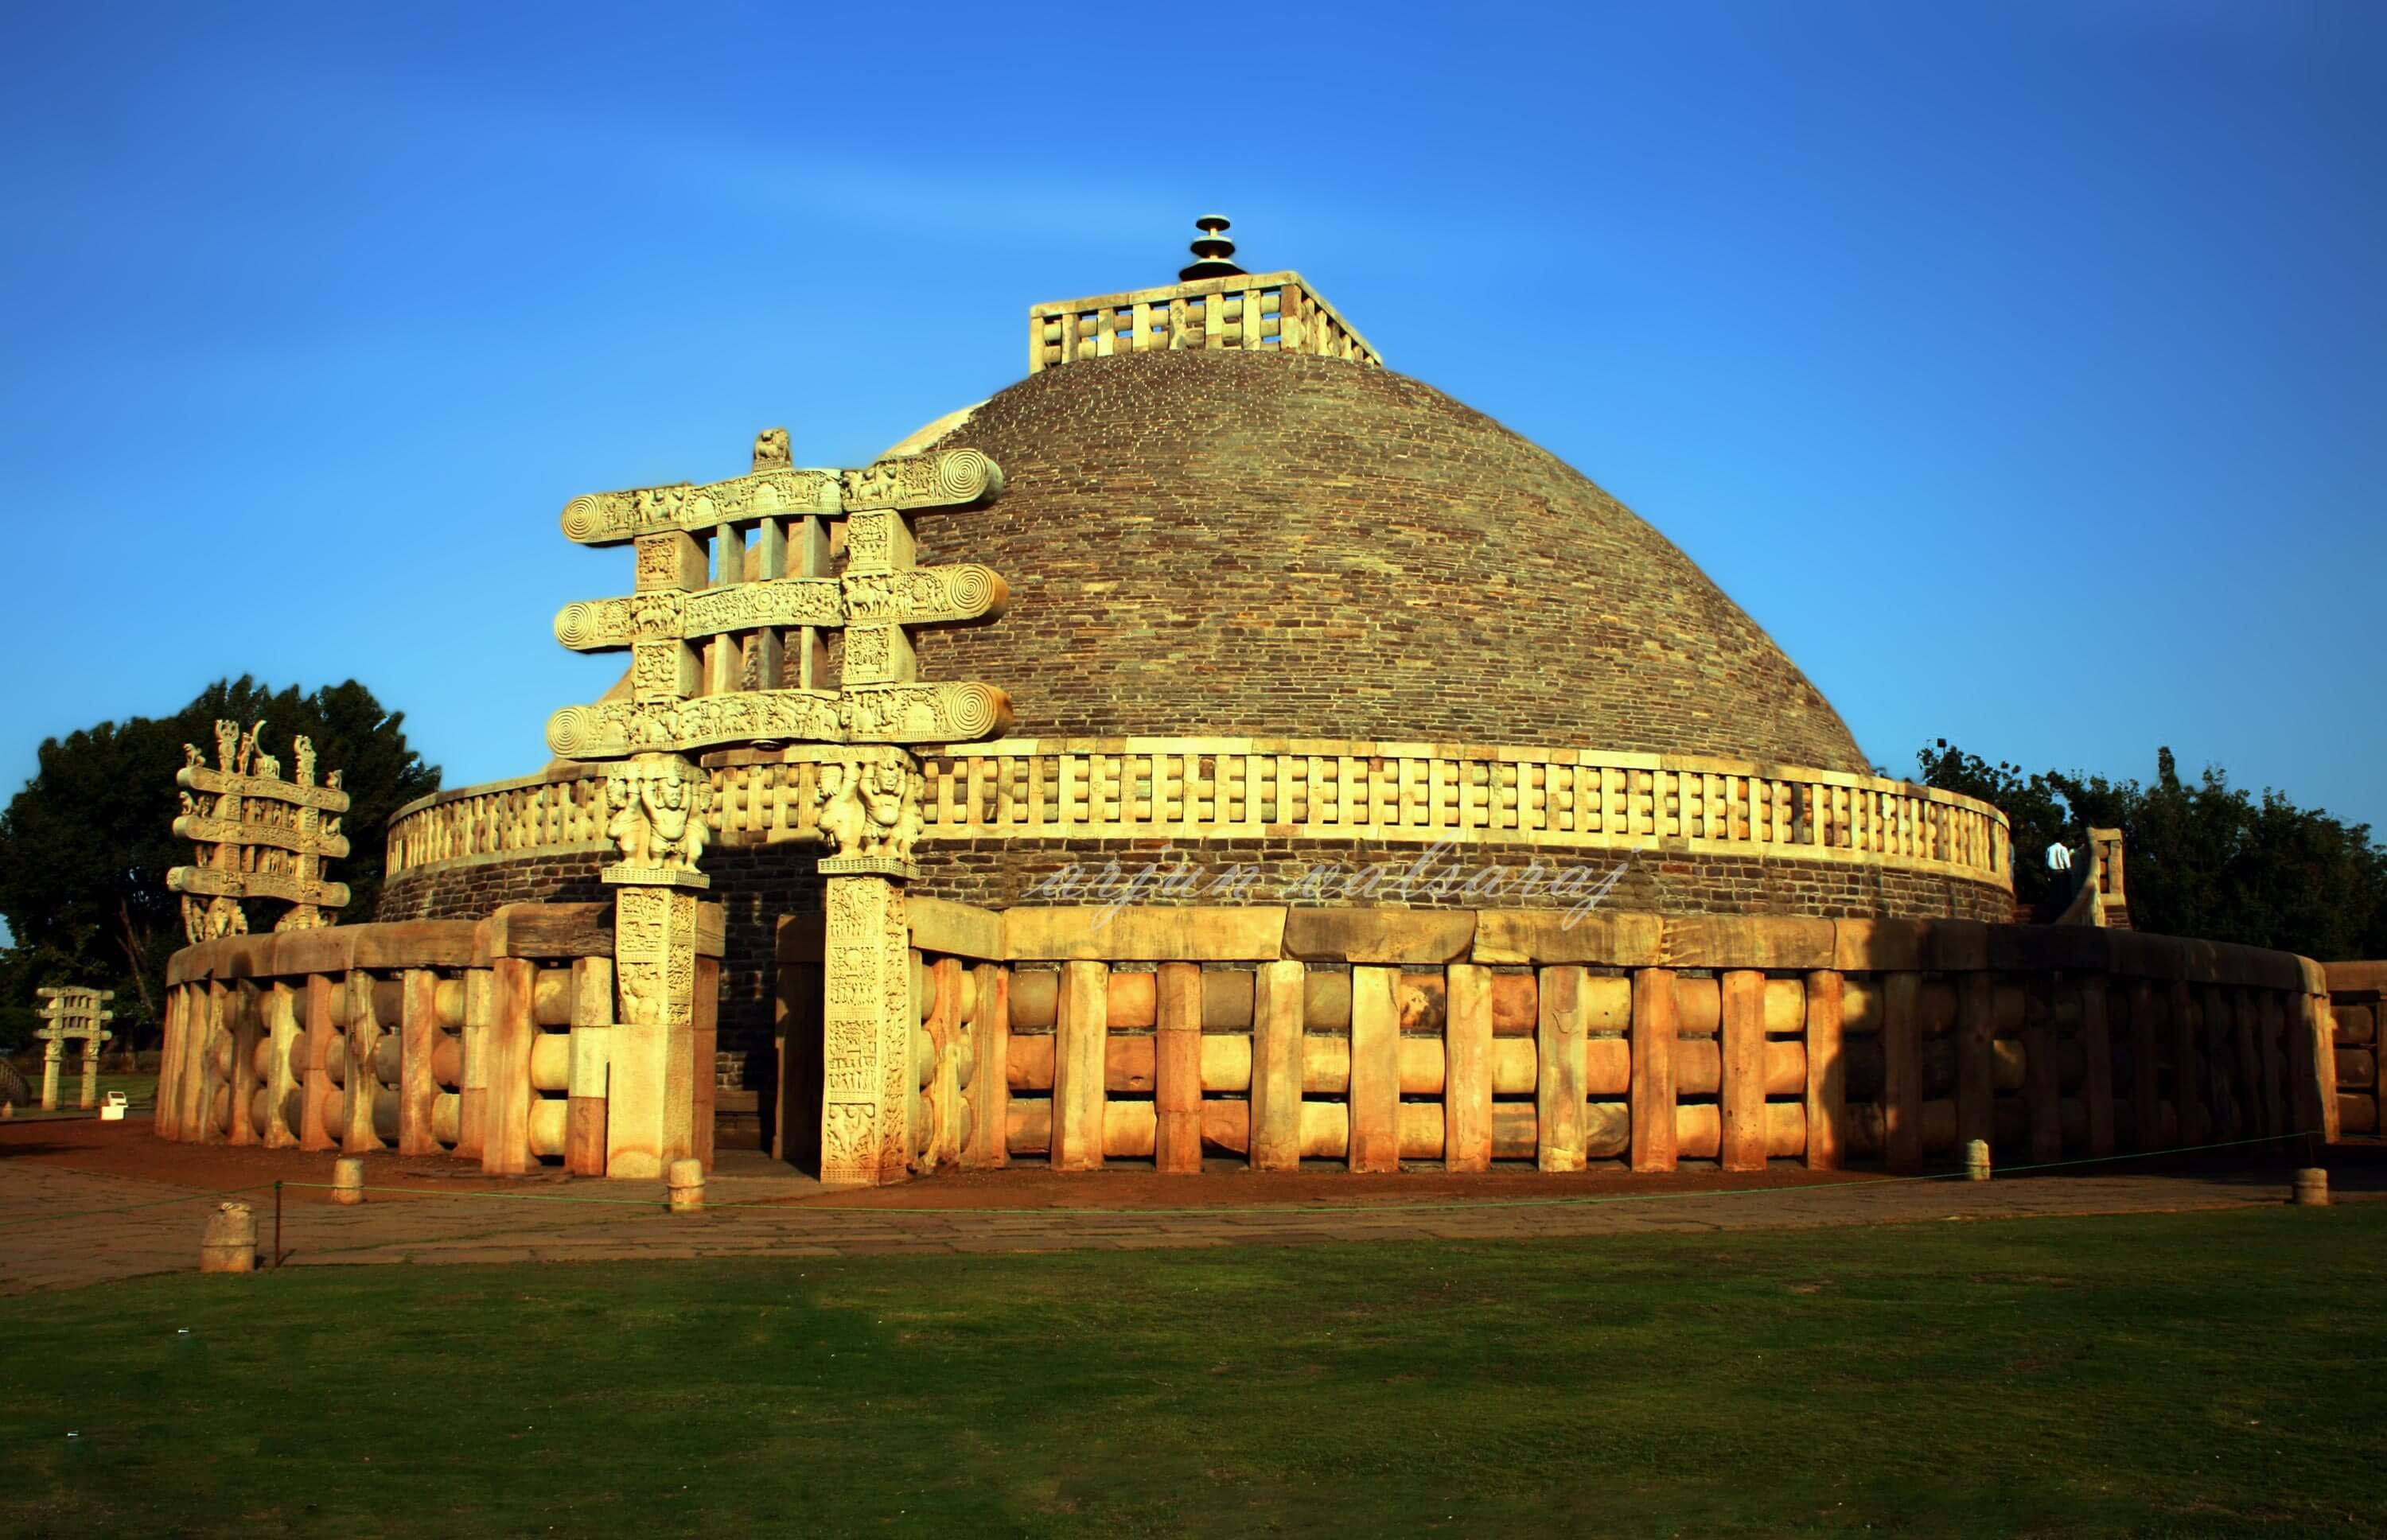 Sanchi Stupa Wallpaper Hd: From Nalanda Univ. To Mumbai's CST, Here Are 35 Stunning